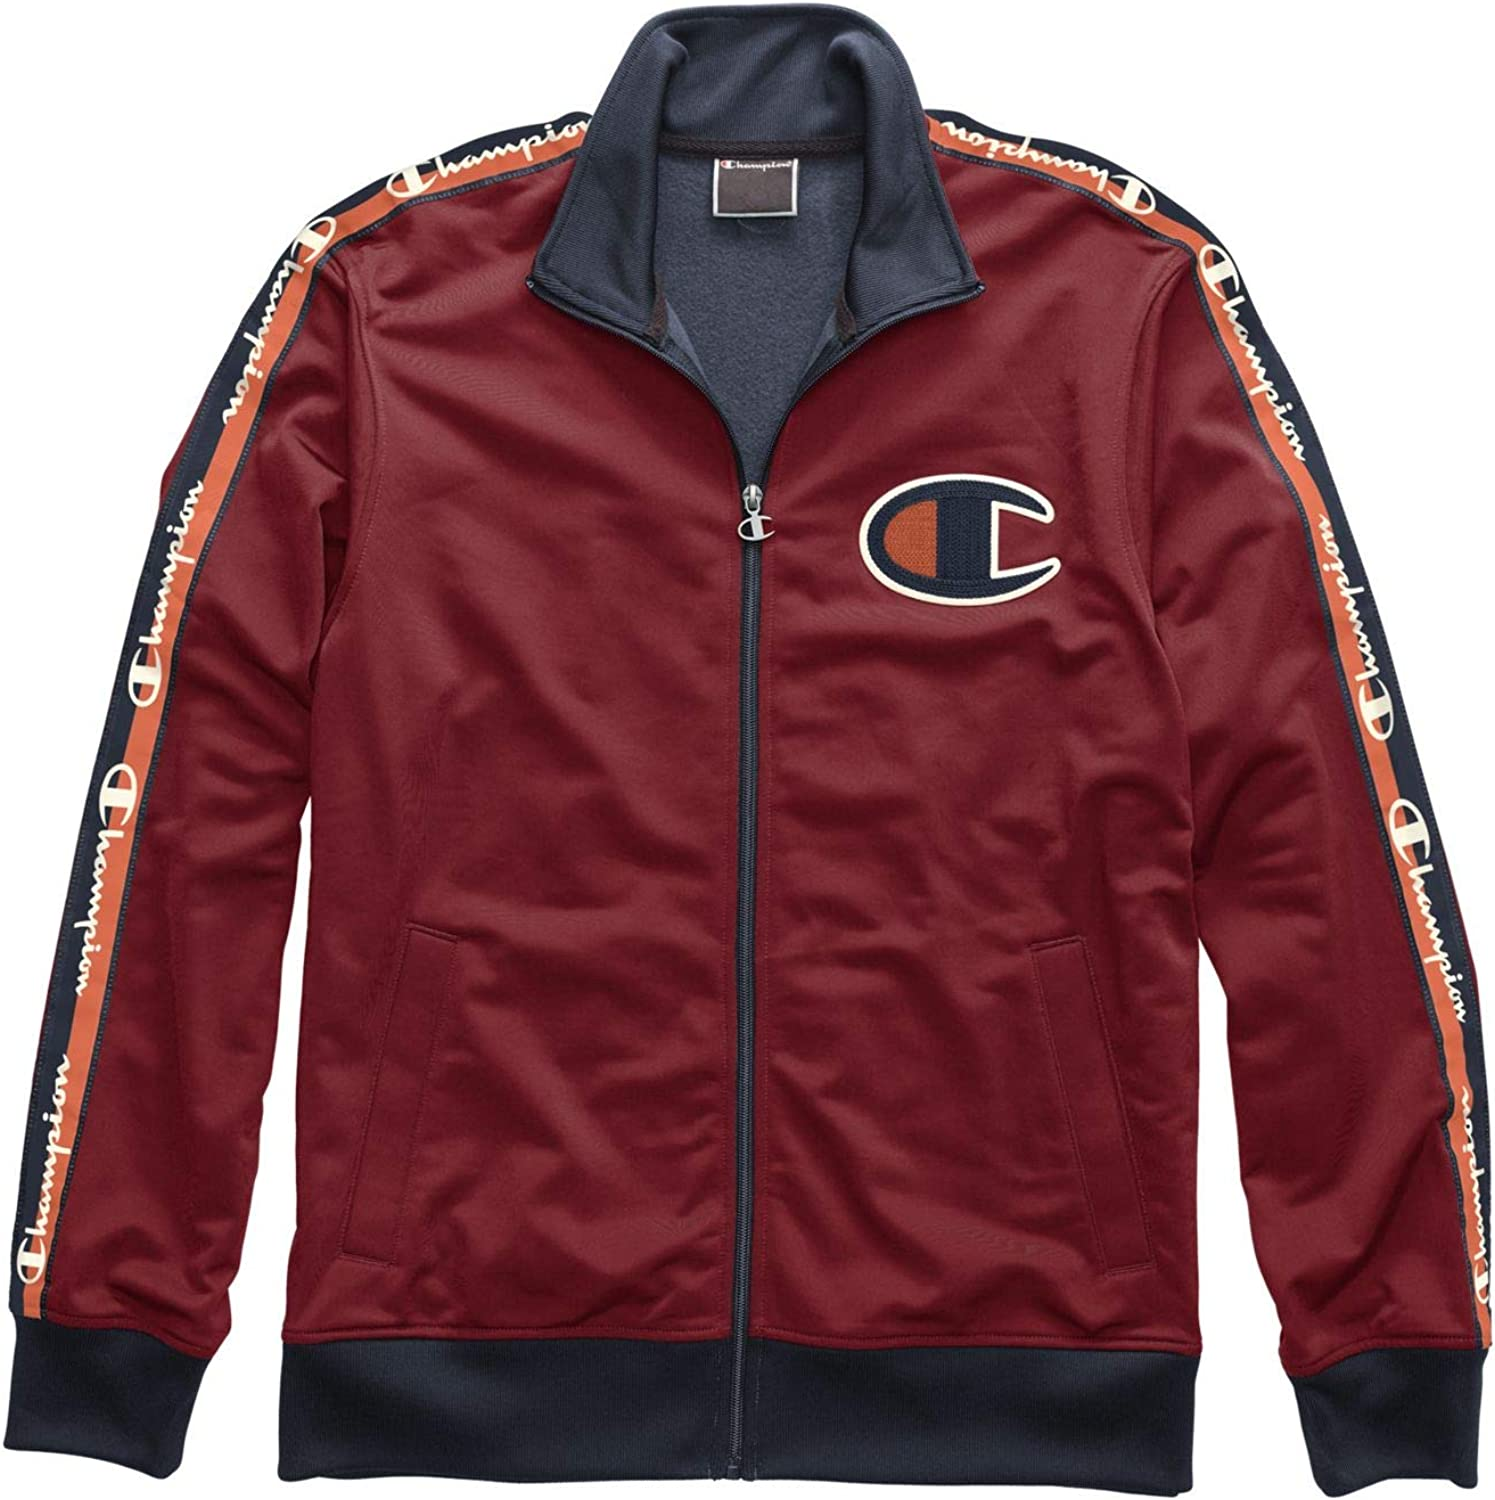 Free shipping on posting reviews Champion Men's Free Shipping New Jacket Track